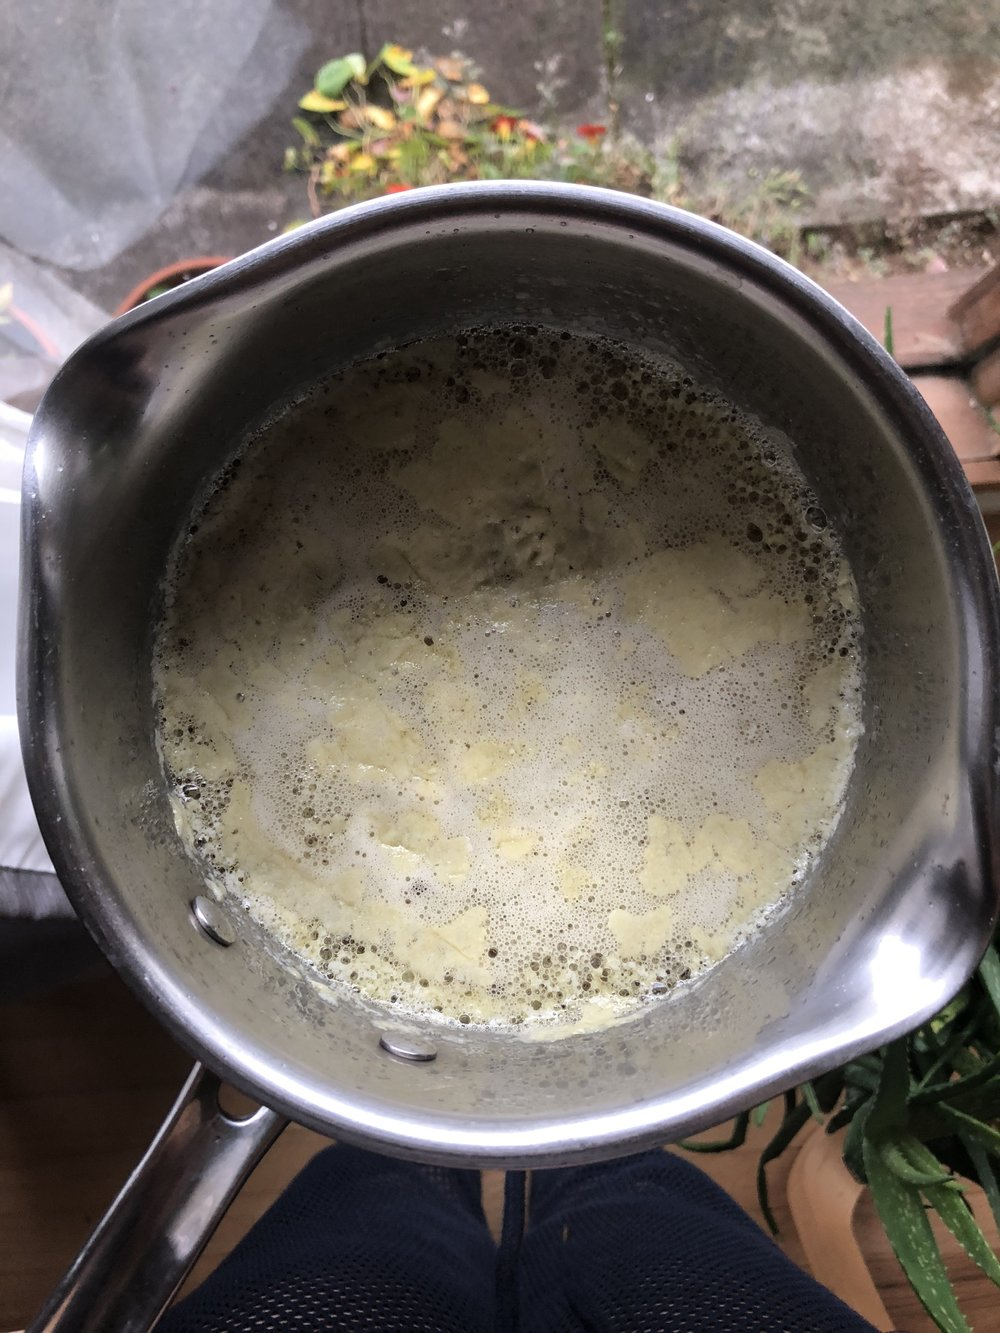 Step 4 - This is what the milk solids will look like when the ghee is done. Remove from heat. To make the straining easier, you may choose to spoon the milk solids off the top and discard.